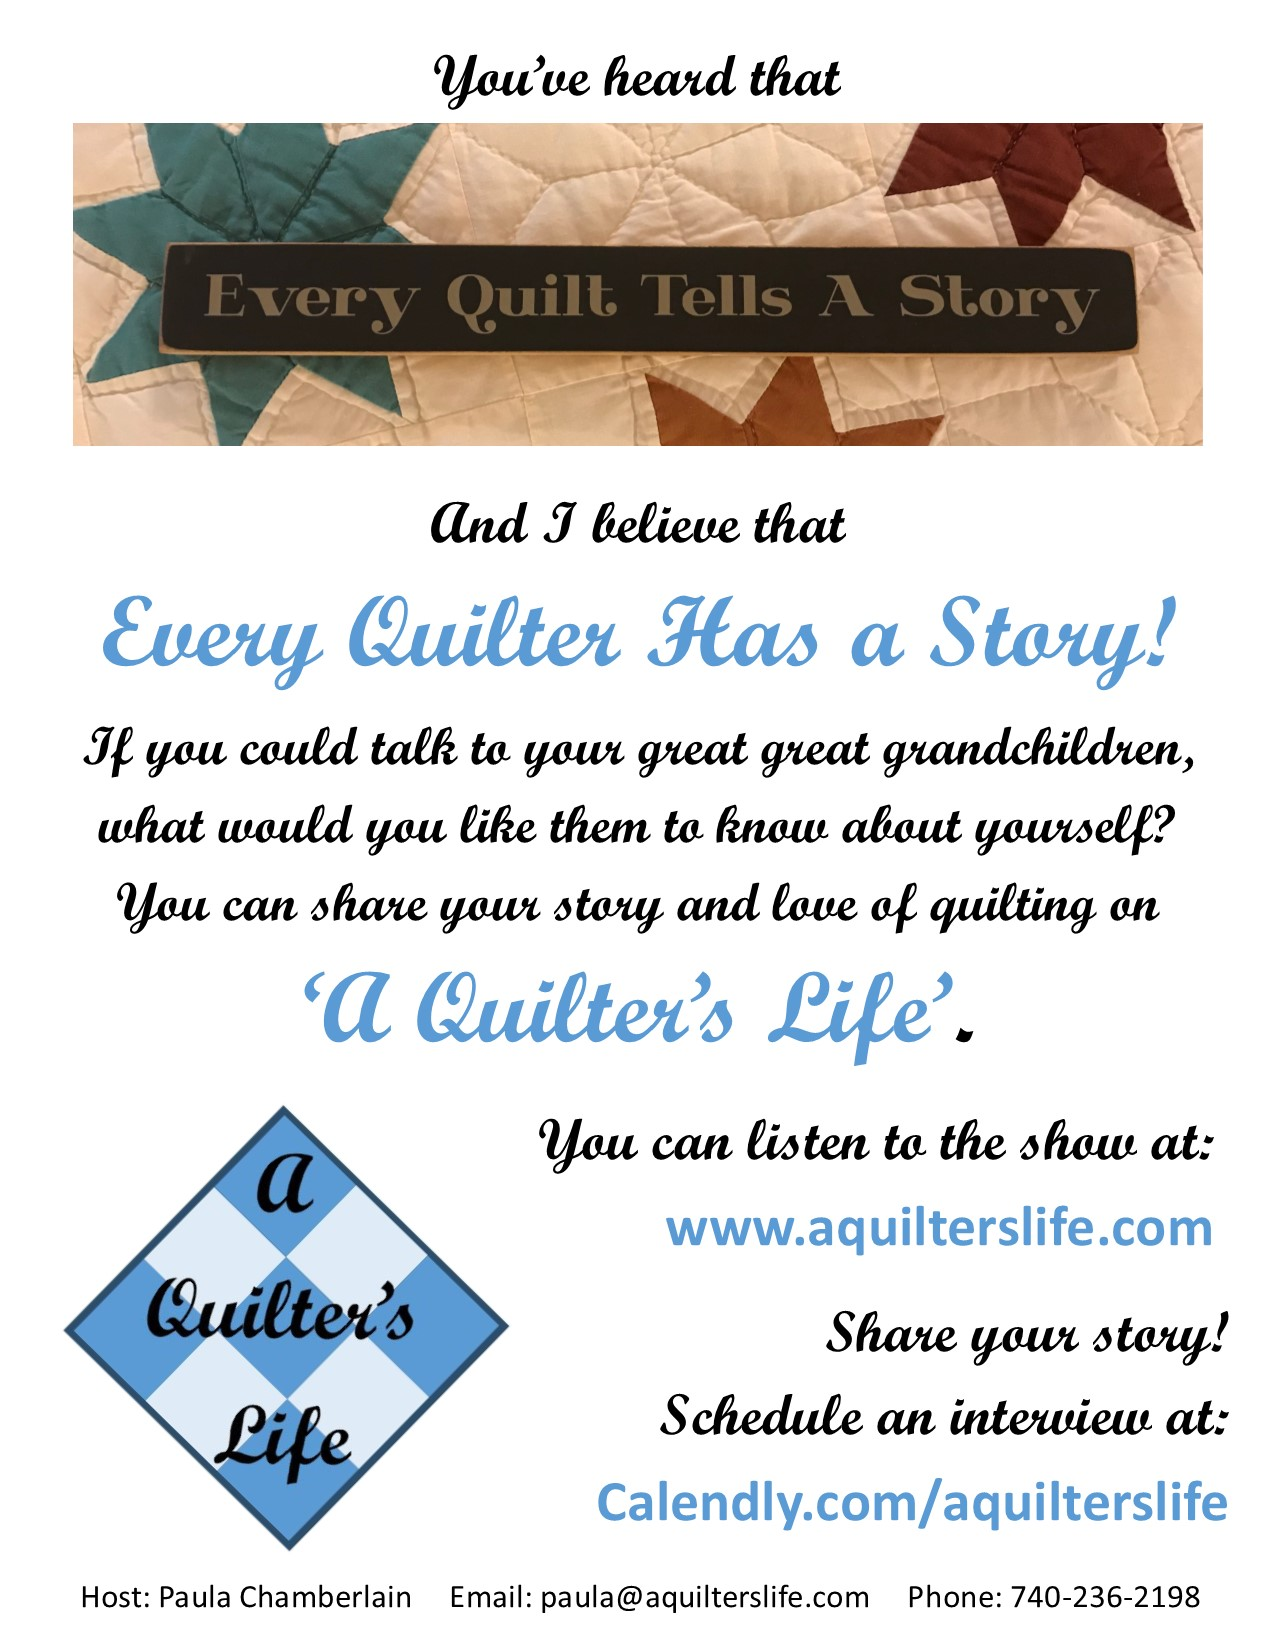 A Quilter's Life Poster P1